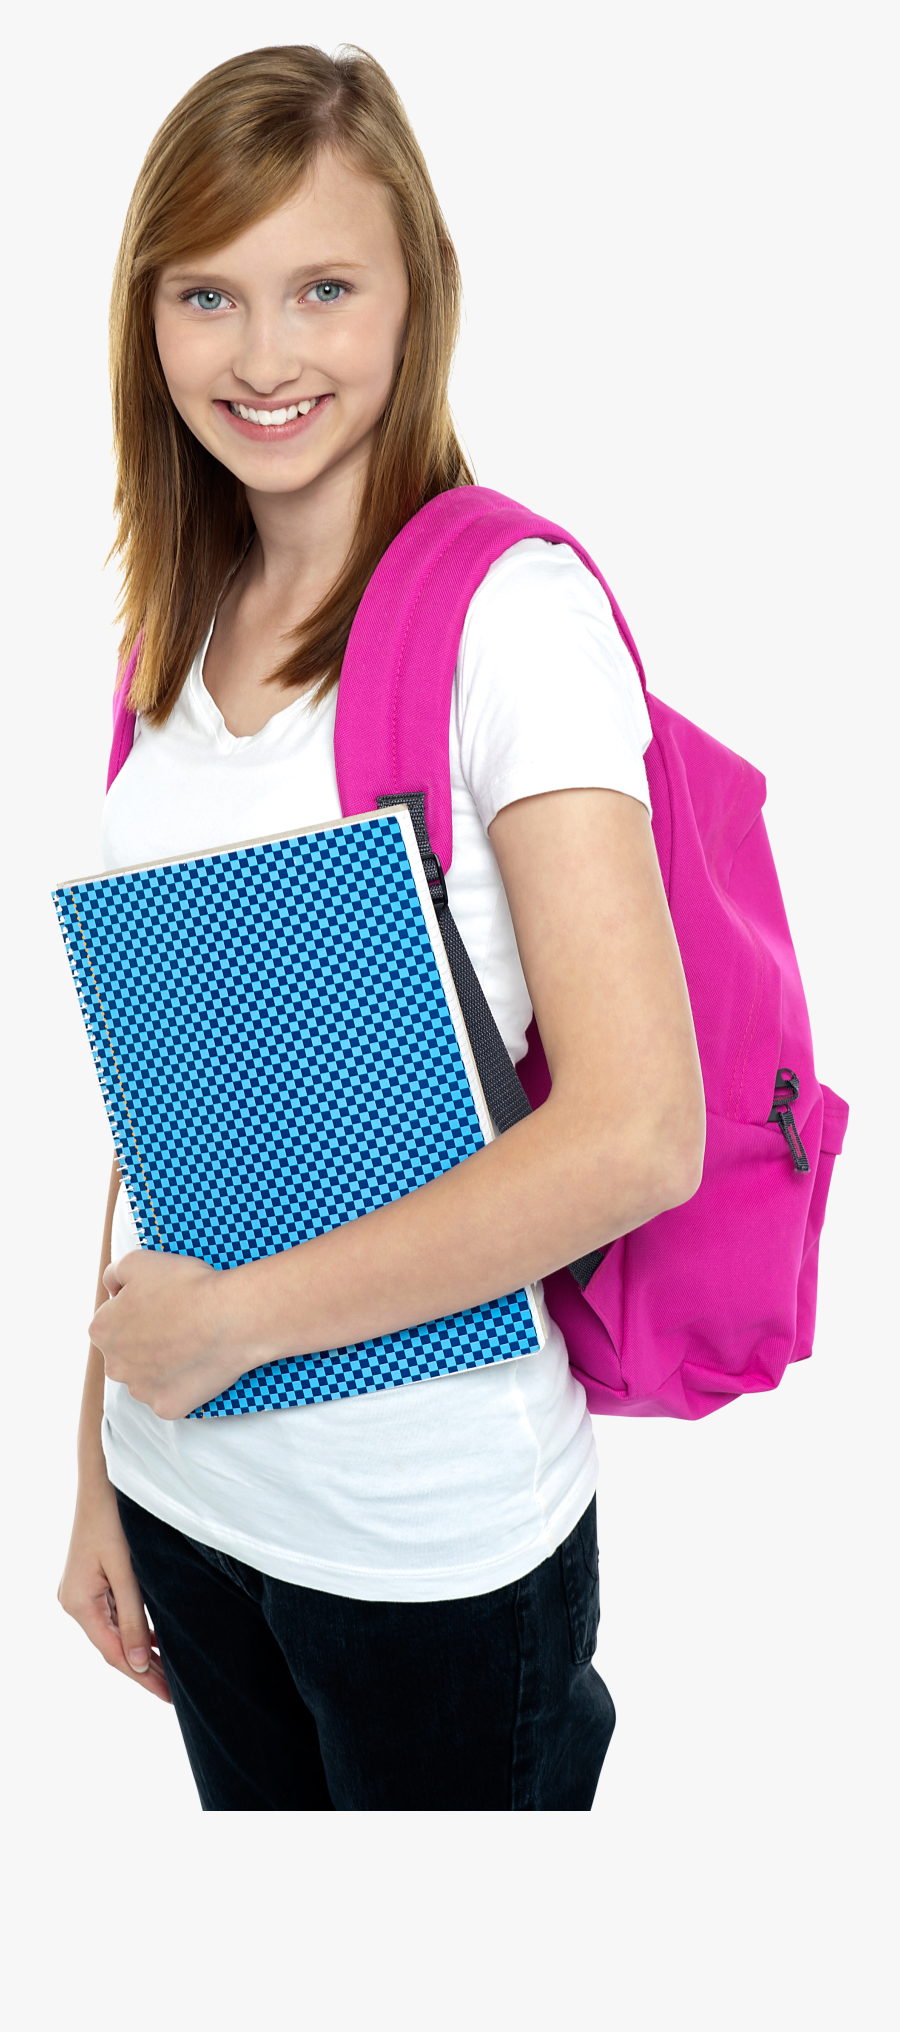 Young Girl Student Png Image - Student, Transparent Clipart